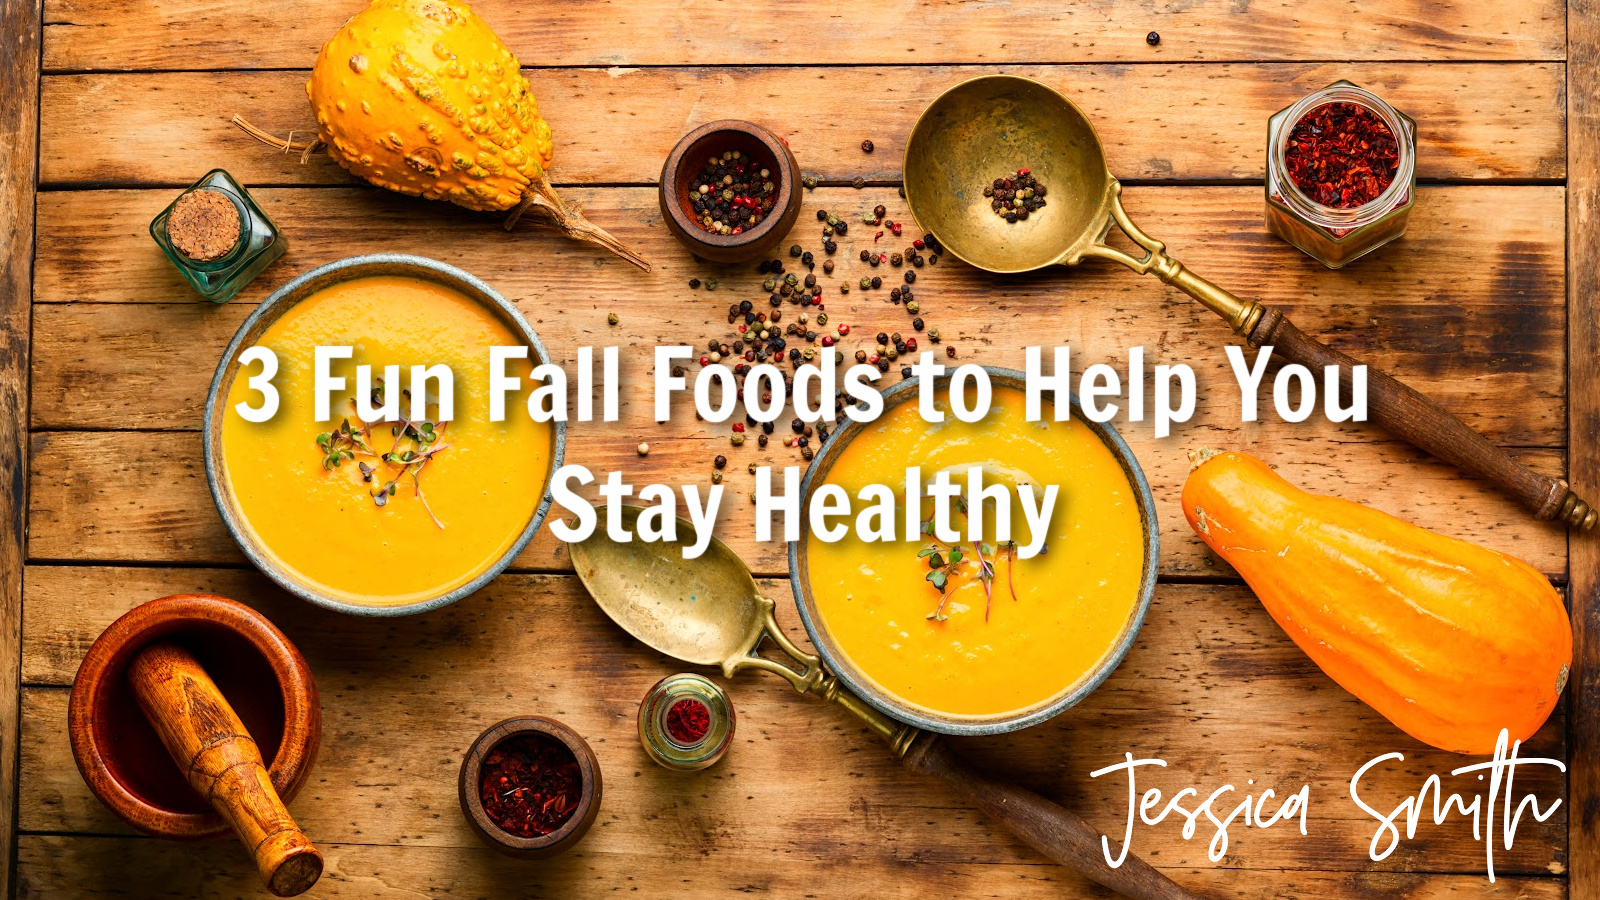 5 Fun Fall Foods That Help You Stay Healthy (Plus 3 Simple Seasonal Recipes to Try!)